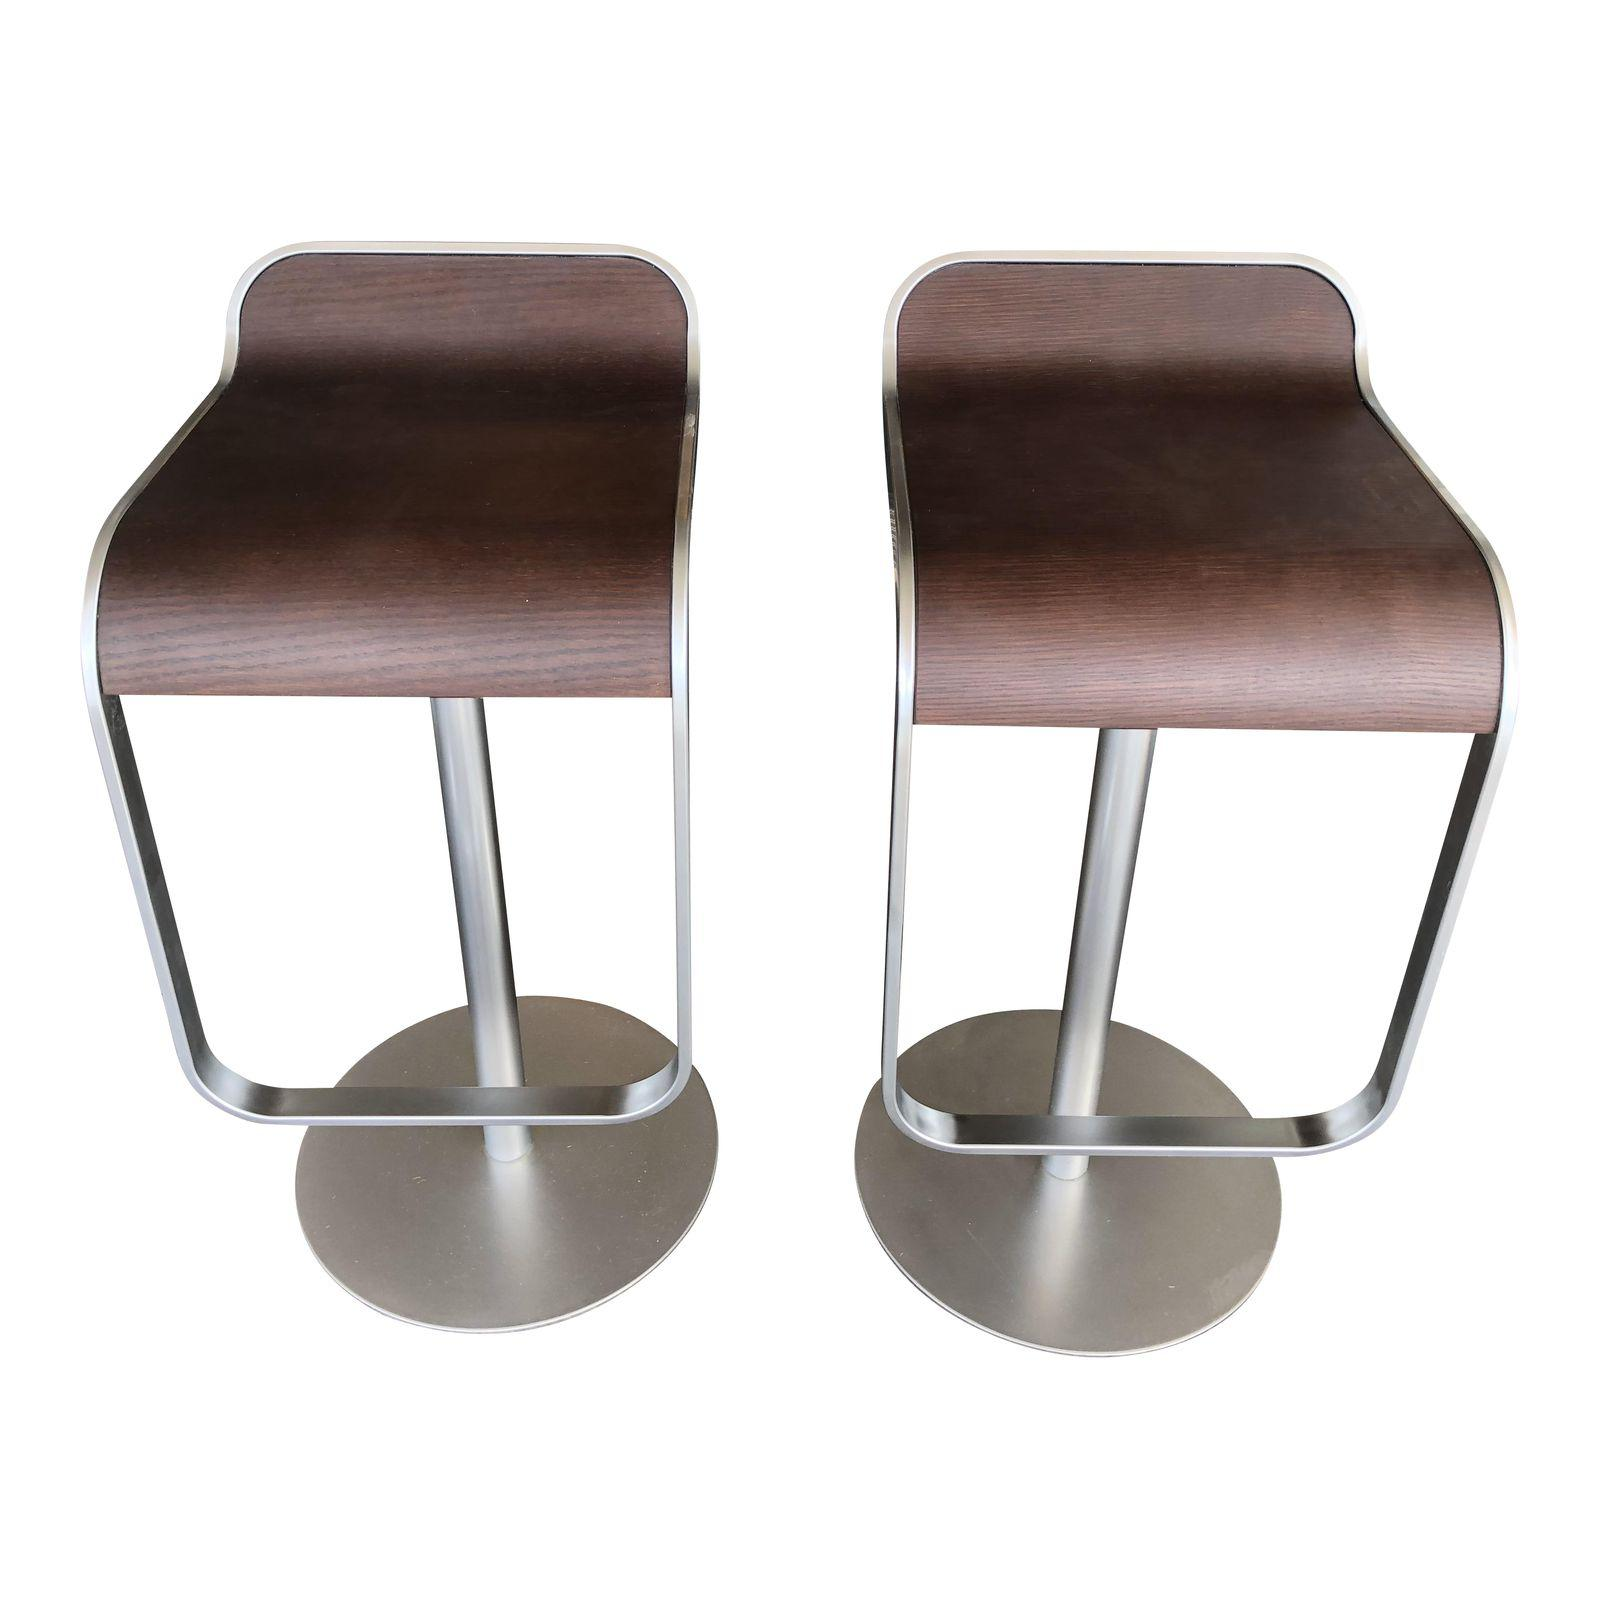 A pair of LEM Pistol Bar Stools from Design Within Reach. Designed by Shin and Tomoko Azumi the sculptural ...  sc 1 st  Design Plus Gallery & Design Within Reach Lem Pistol Bar Stools - A Pair. Original Price ... islam-shia.org